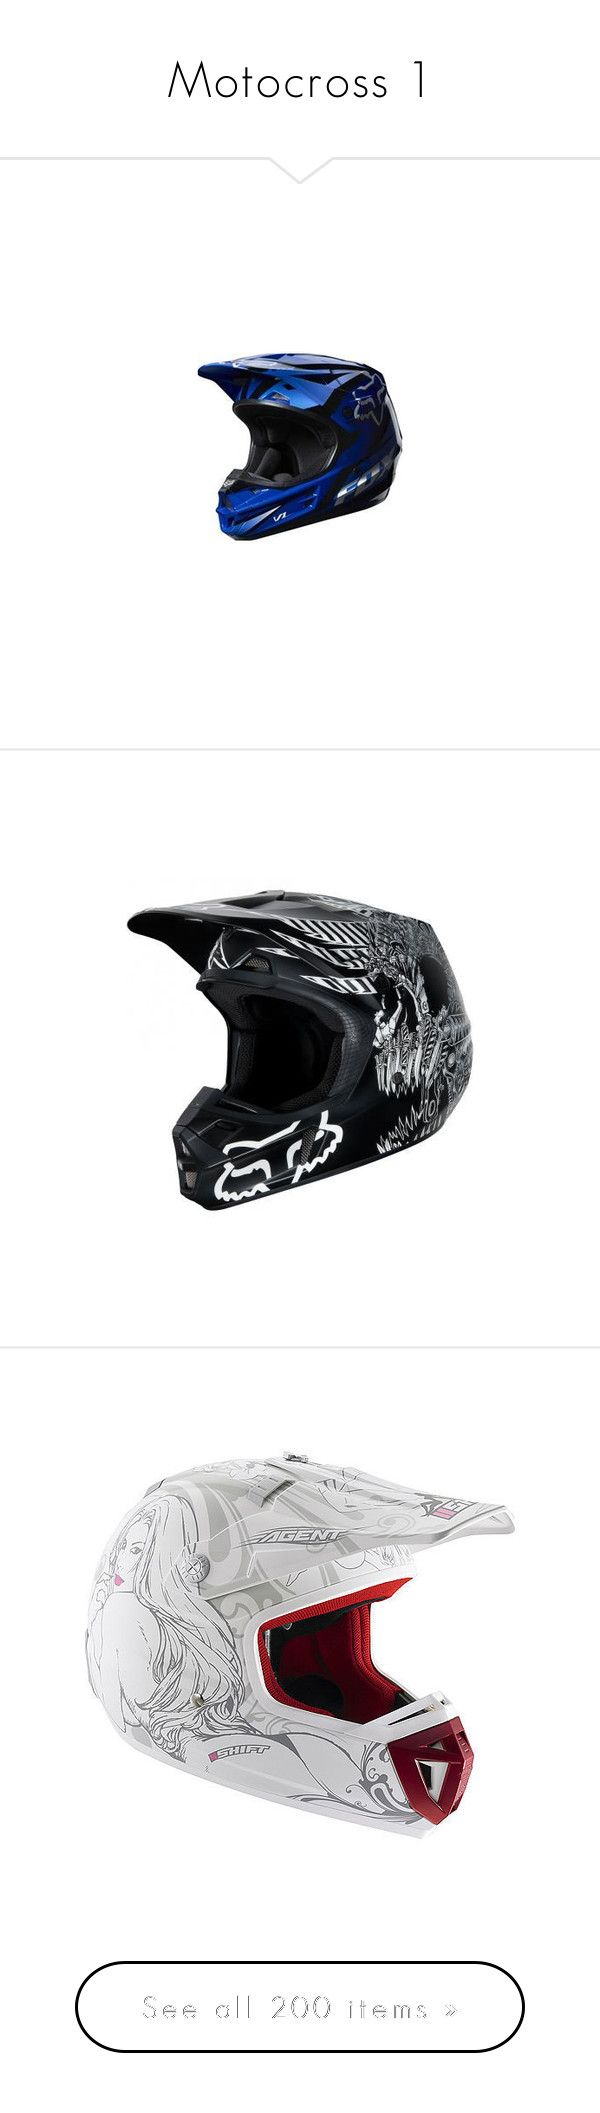 """Motocross 1"" by chimerah17 ❤ liked on Polyvore featuring motocross, hats, helmets, motorcross, helmet, sports, accessories, bike, fox and vehicle"